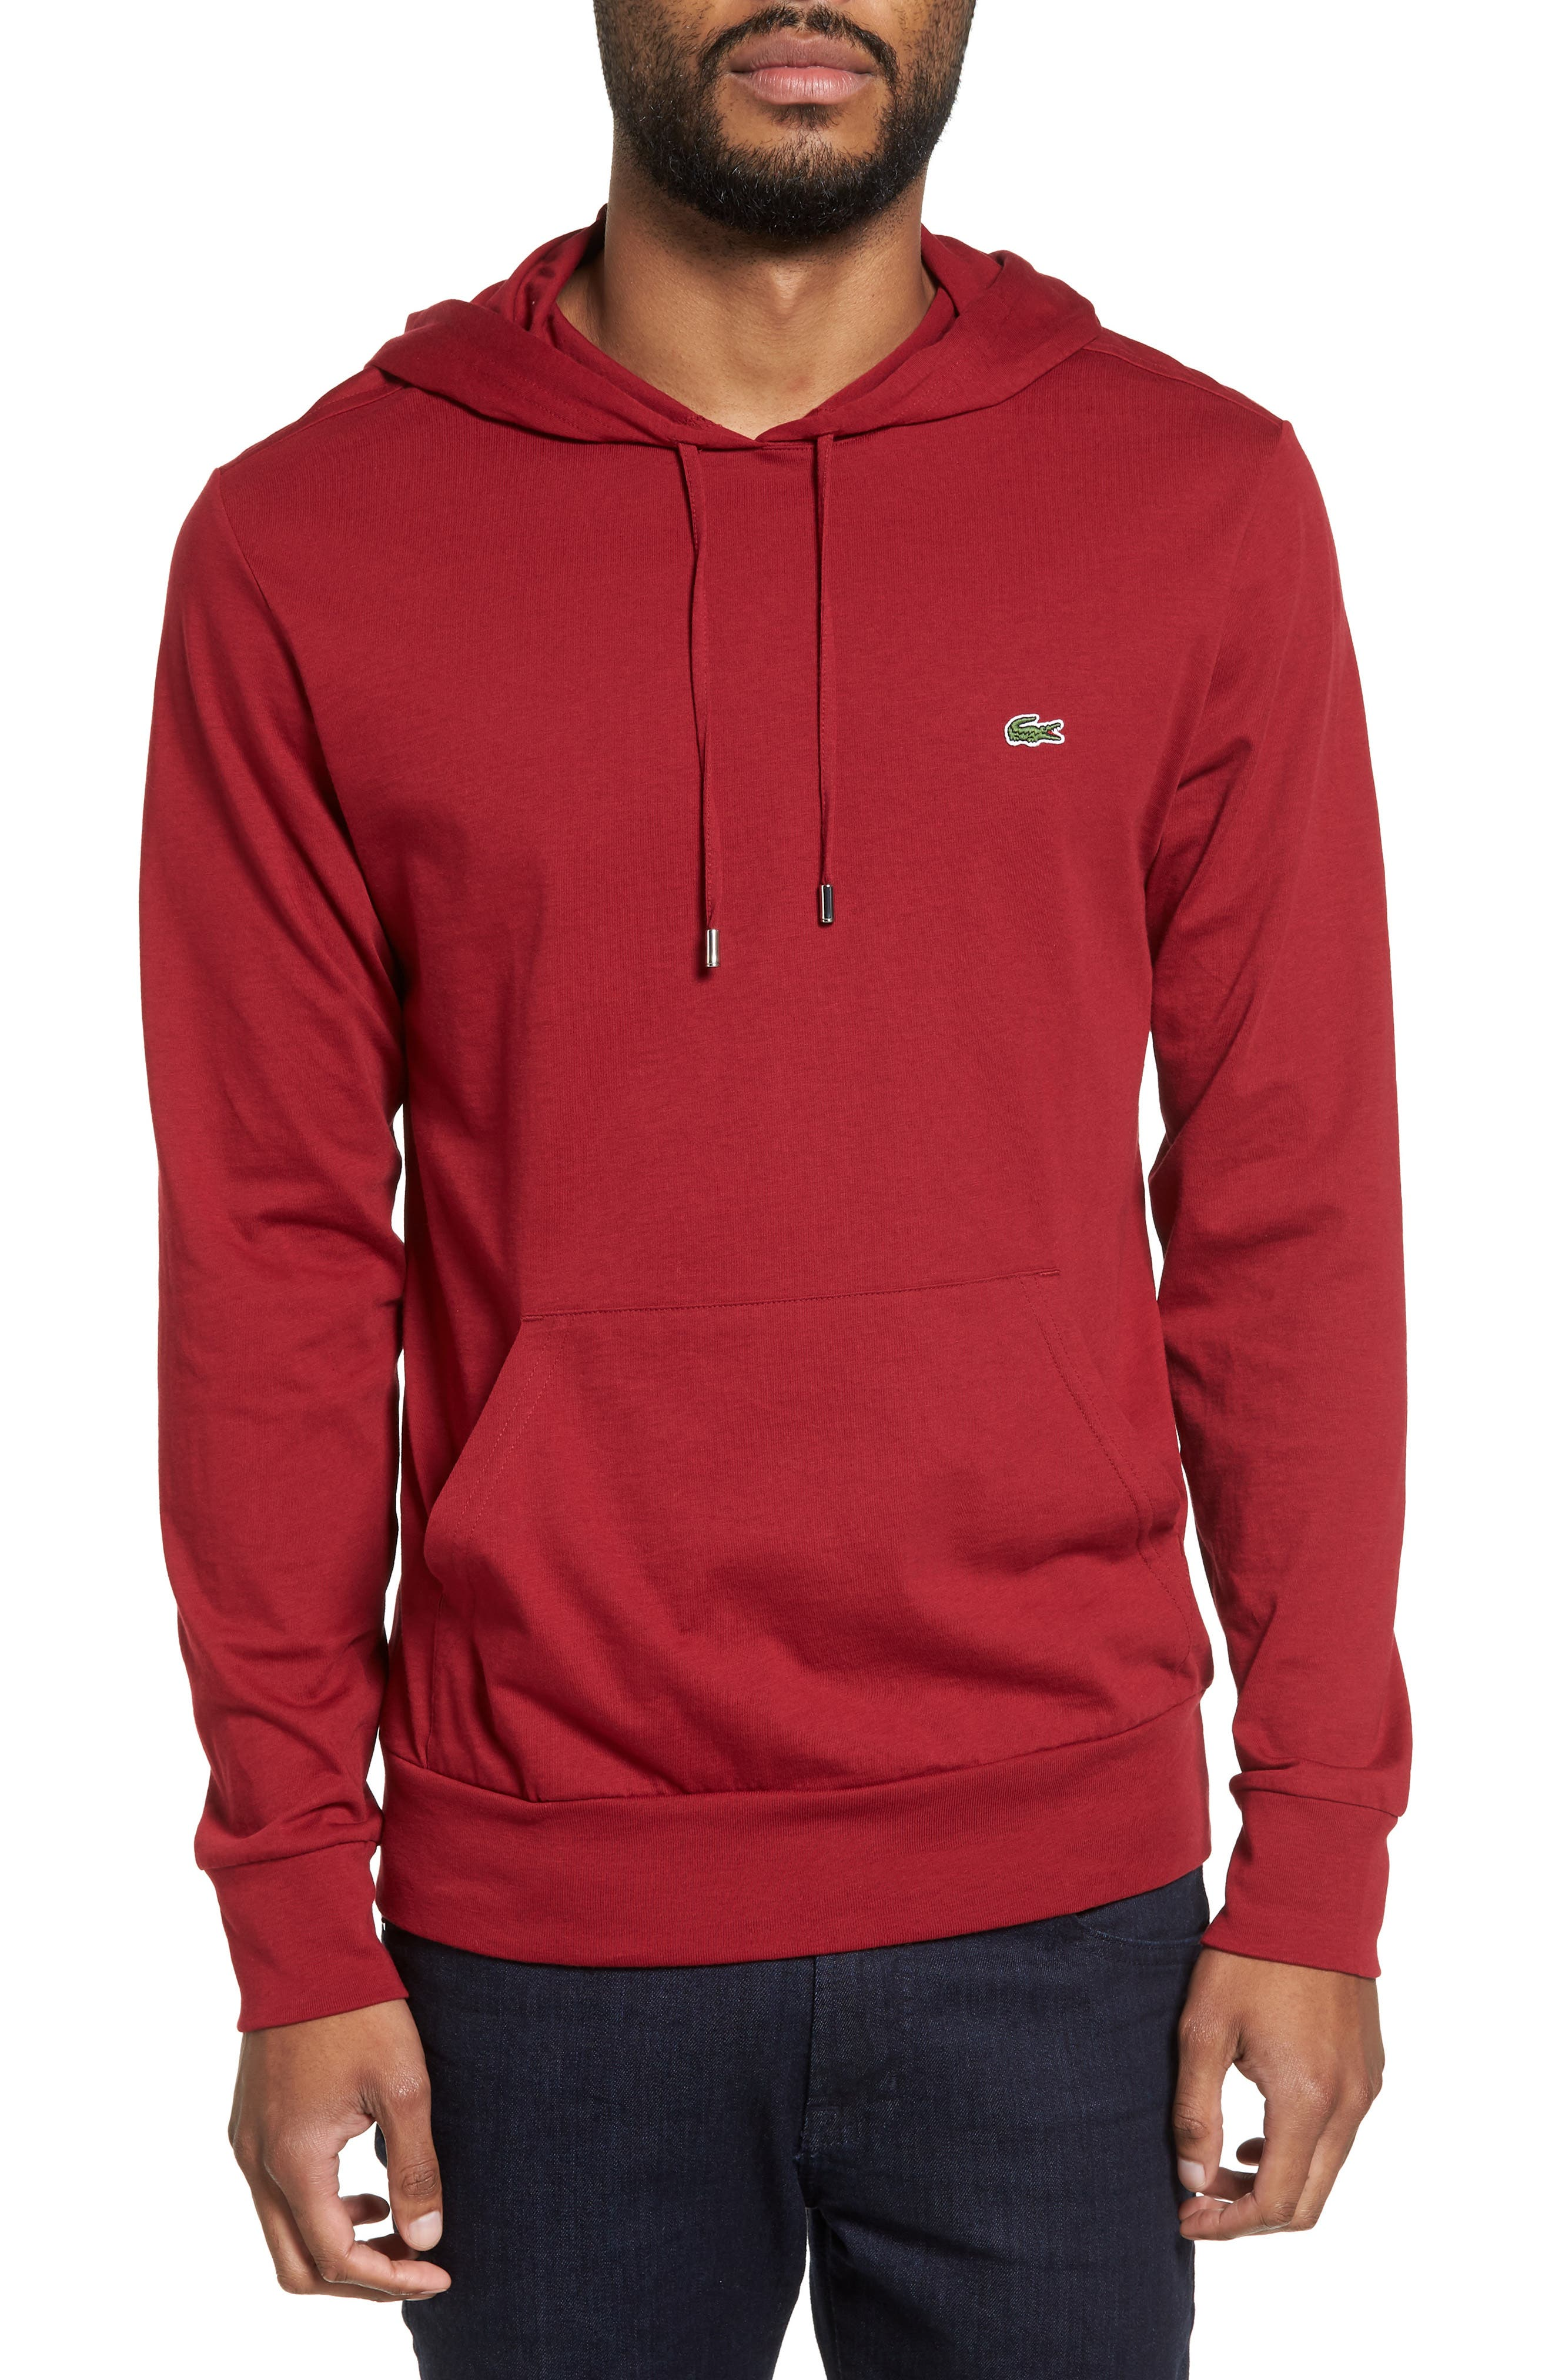 Alternate Image 1 Selected - Lacoste Pullover Hoodie